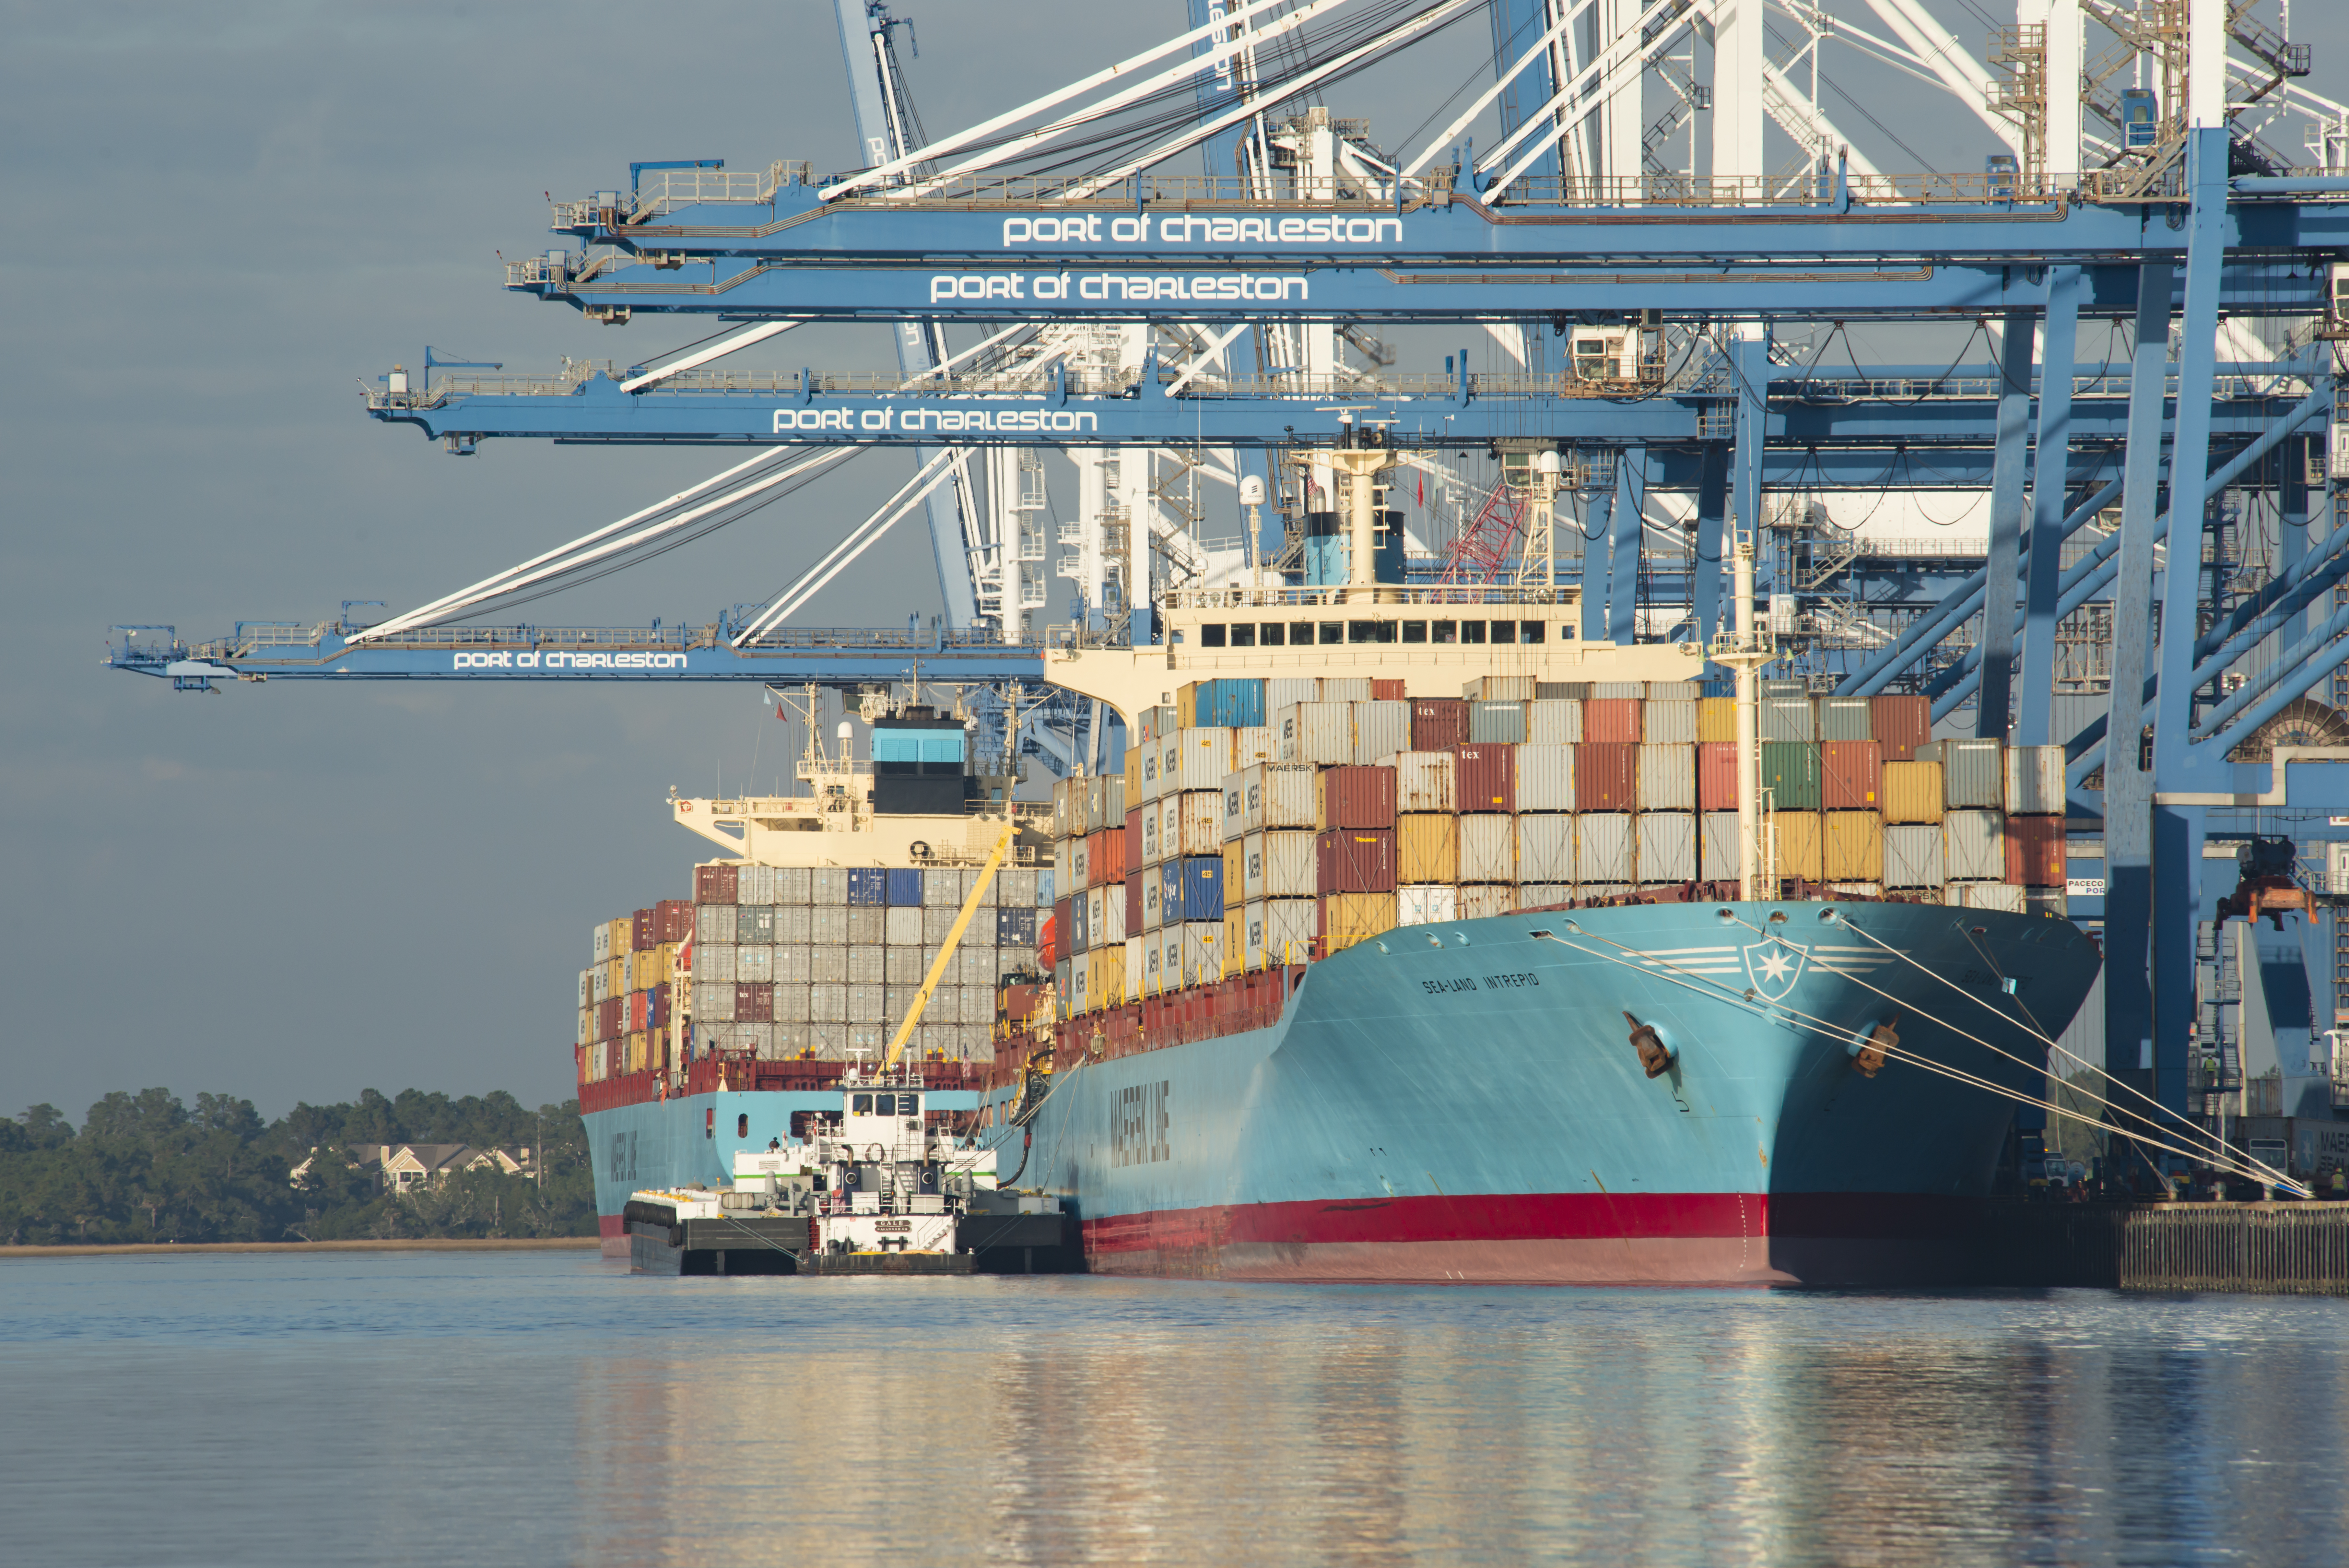 Charleston, SC, US - December 9, 2015: Taken of the Port of Charleston with cargo ships being loaded on the Cooper River.